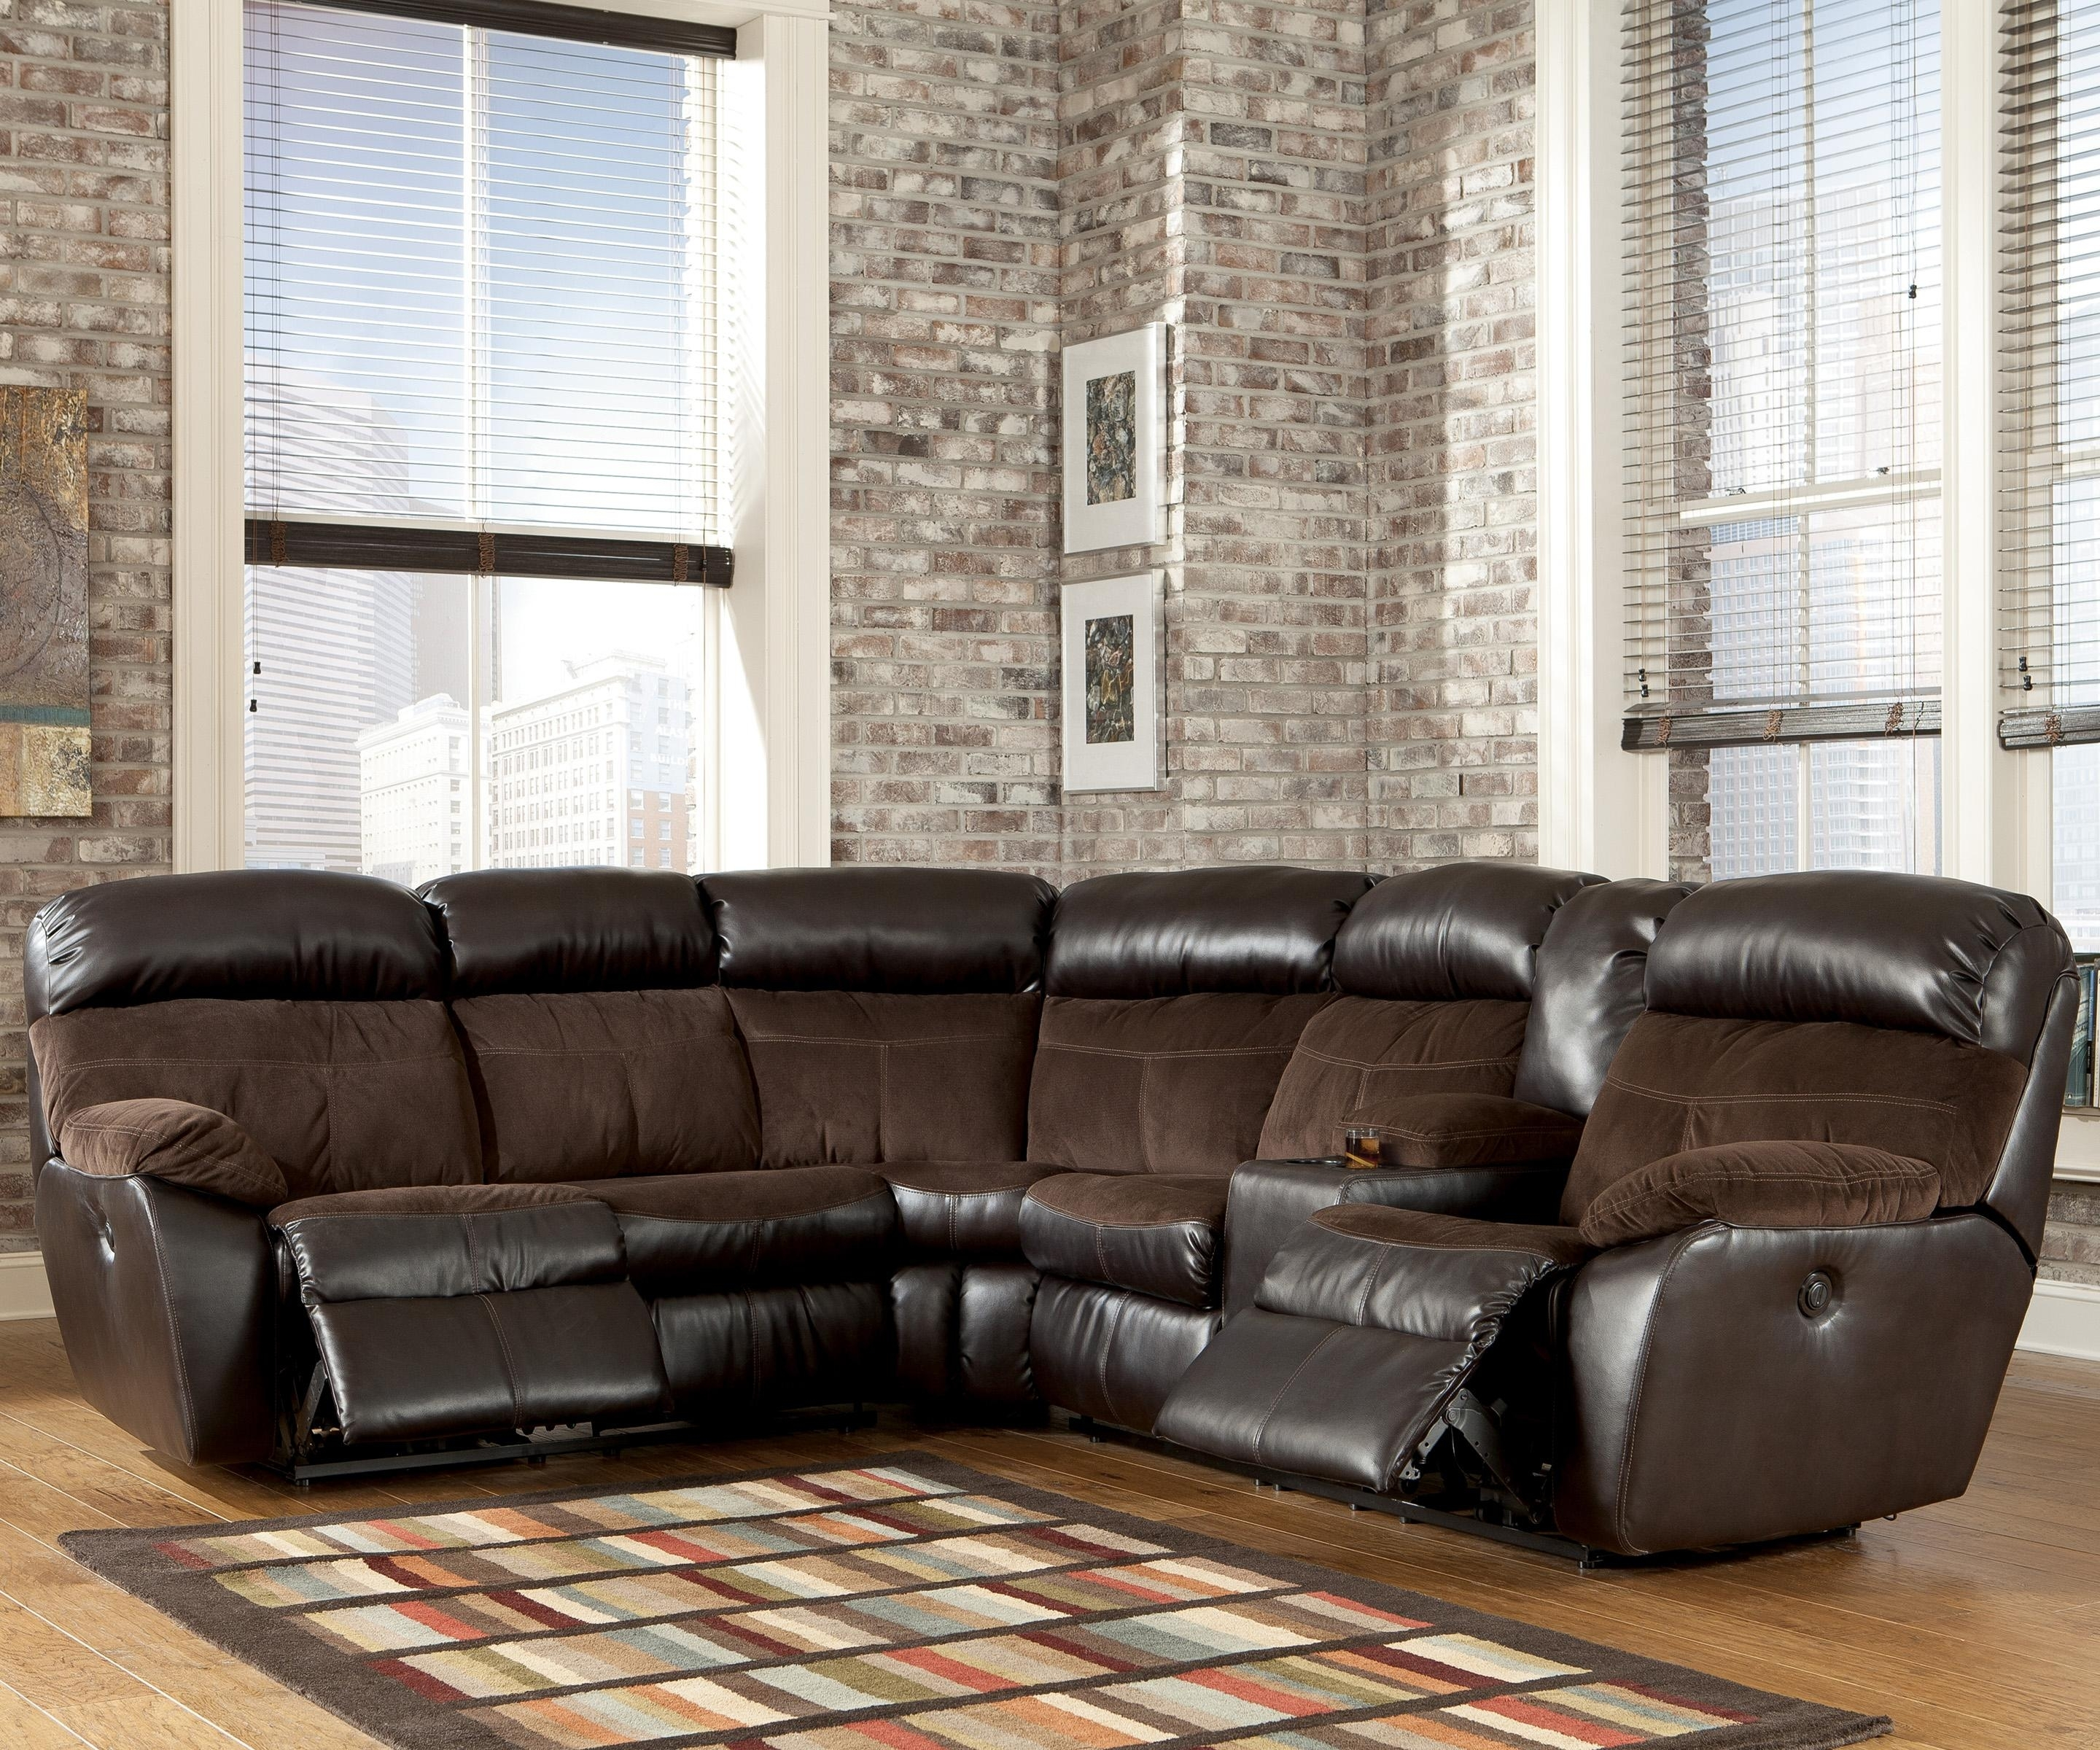 Sofas Black Leather Sectional Piece Sofa Sleeper Blue Reclining With throughout Jackson 6 Piece Power Reclining Sectionals (Image 29 of 30)